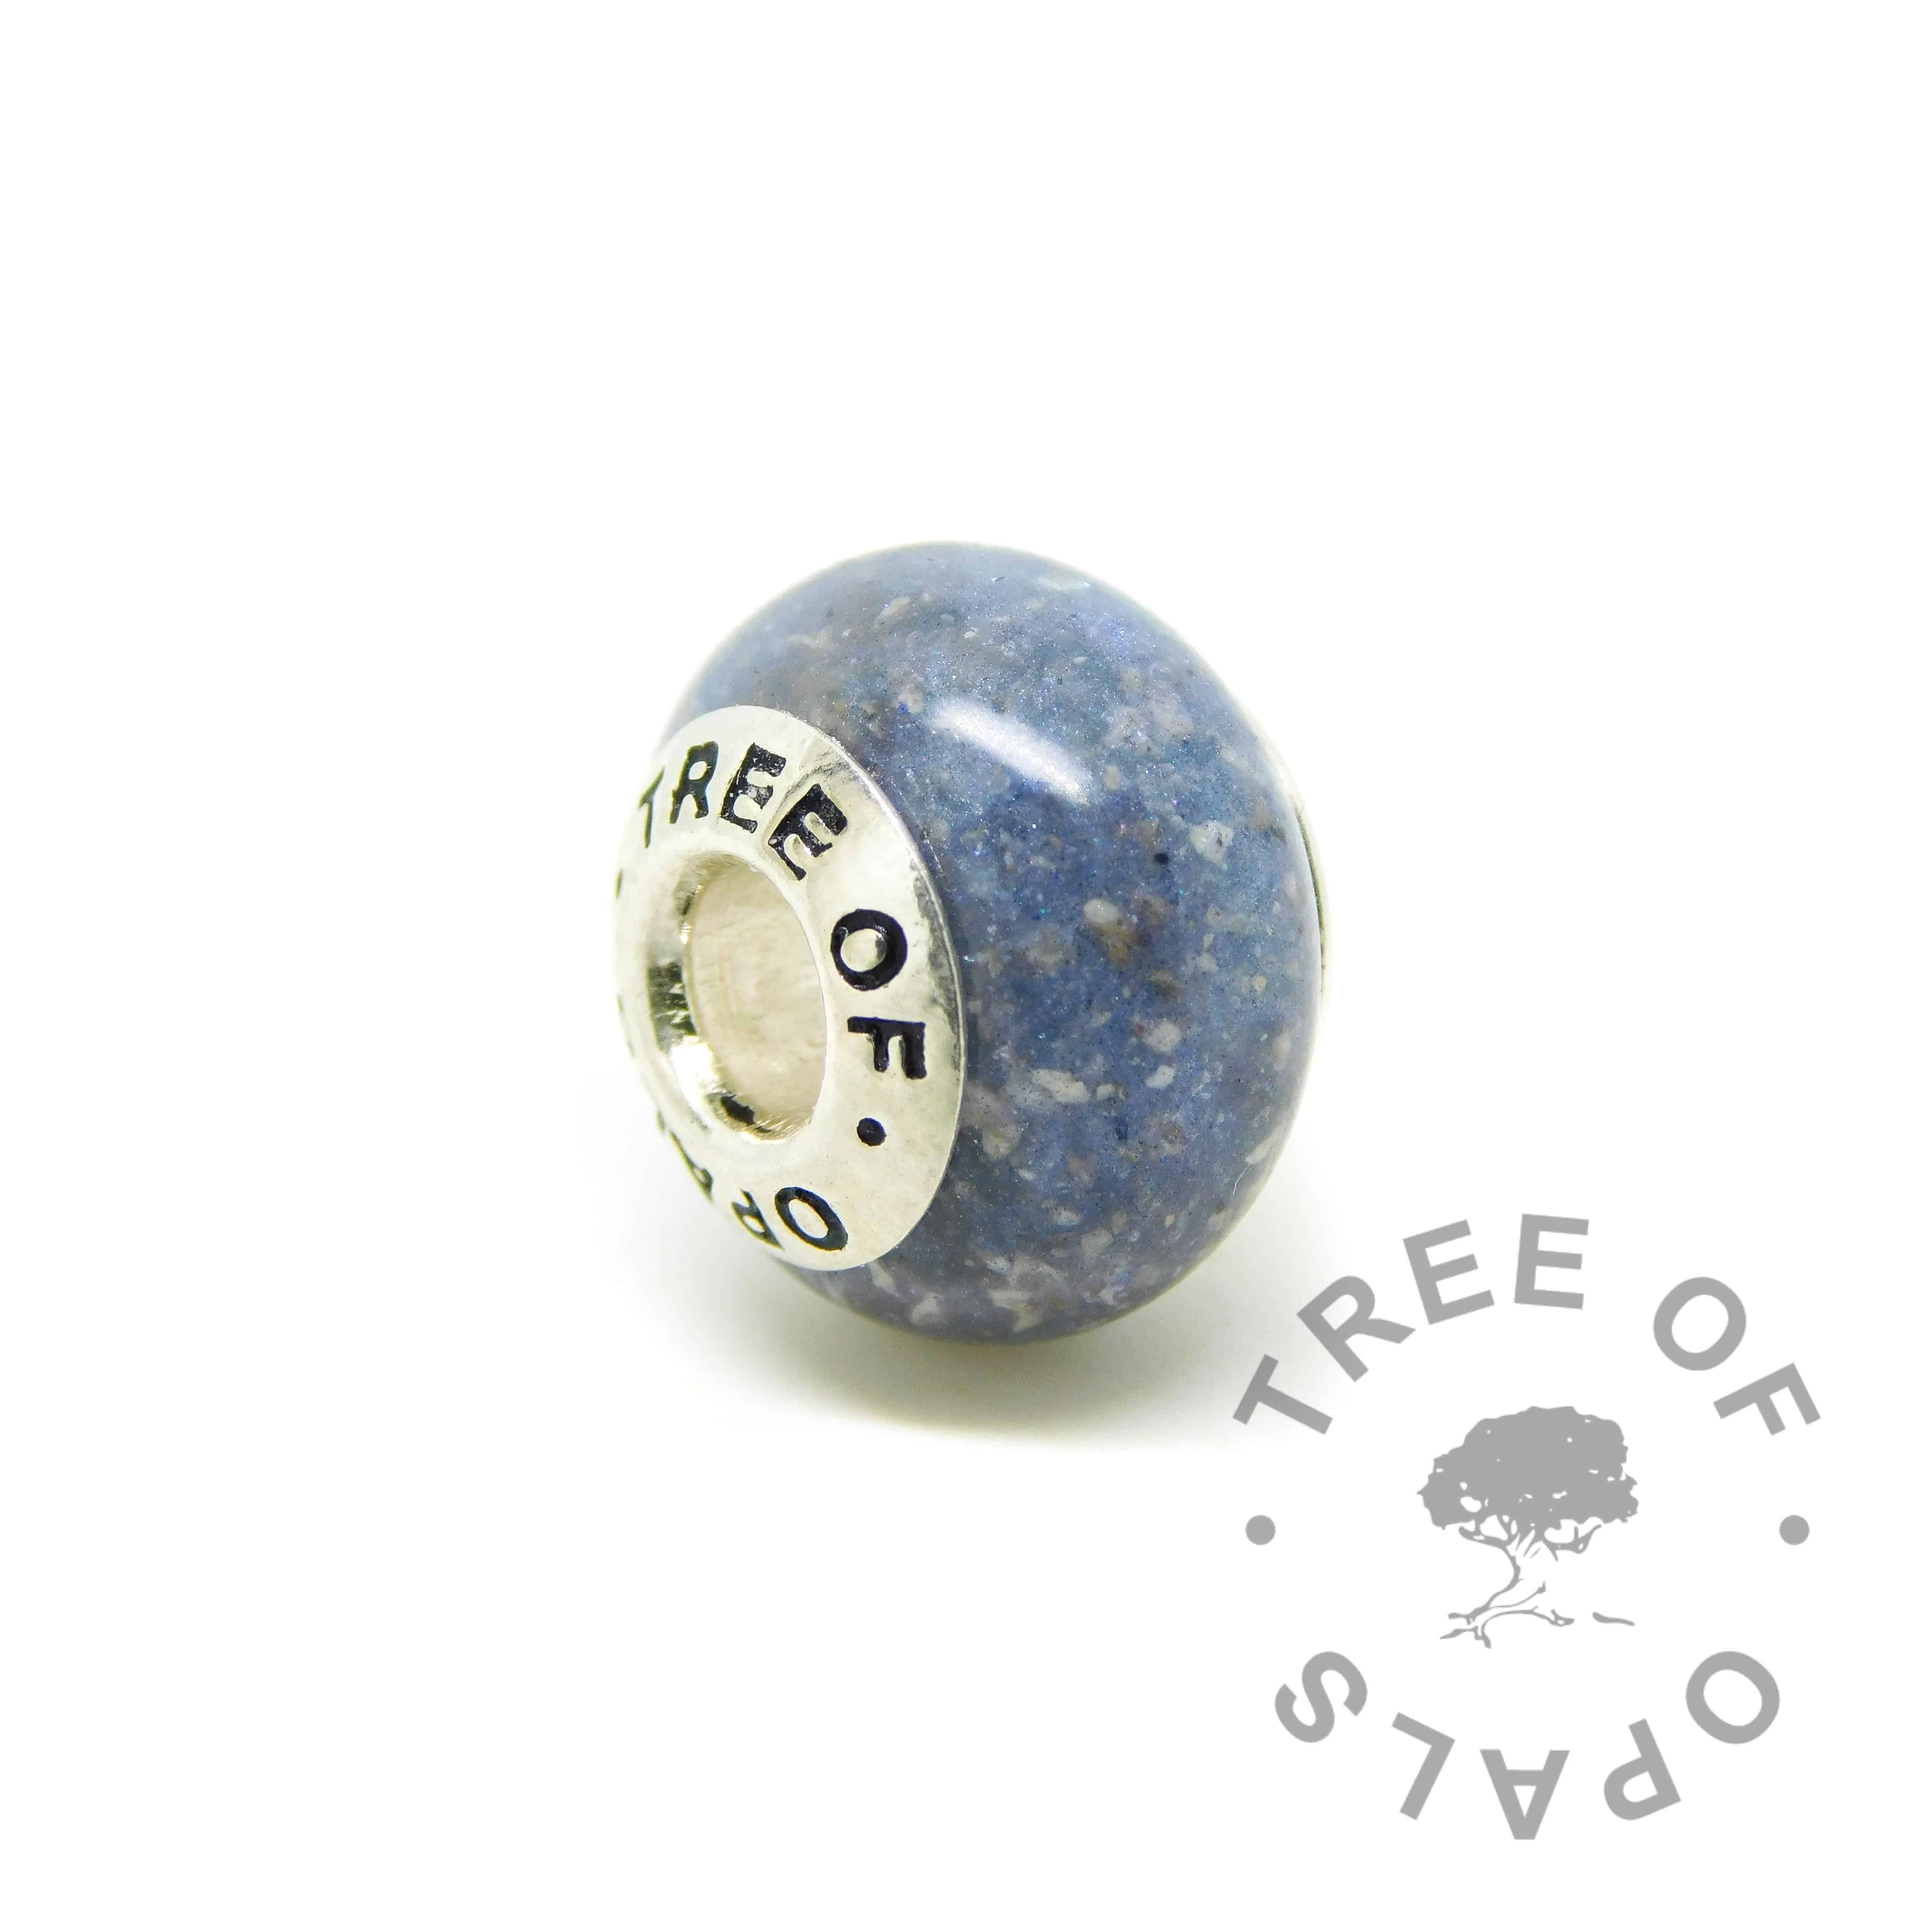 cremation ash charm. Cremation ashes with Aegean blue resin sparkle mix, no birthstone. Set with solid sterling silver Tree of Opals core for Chamilia and Pandora bracelets. Watermarked copyright image by Tree of Opals